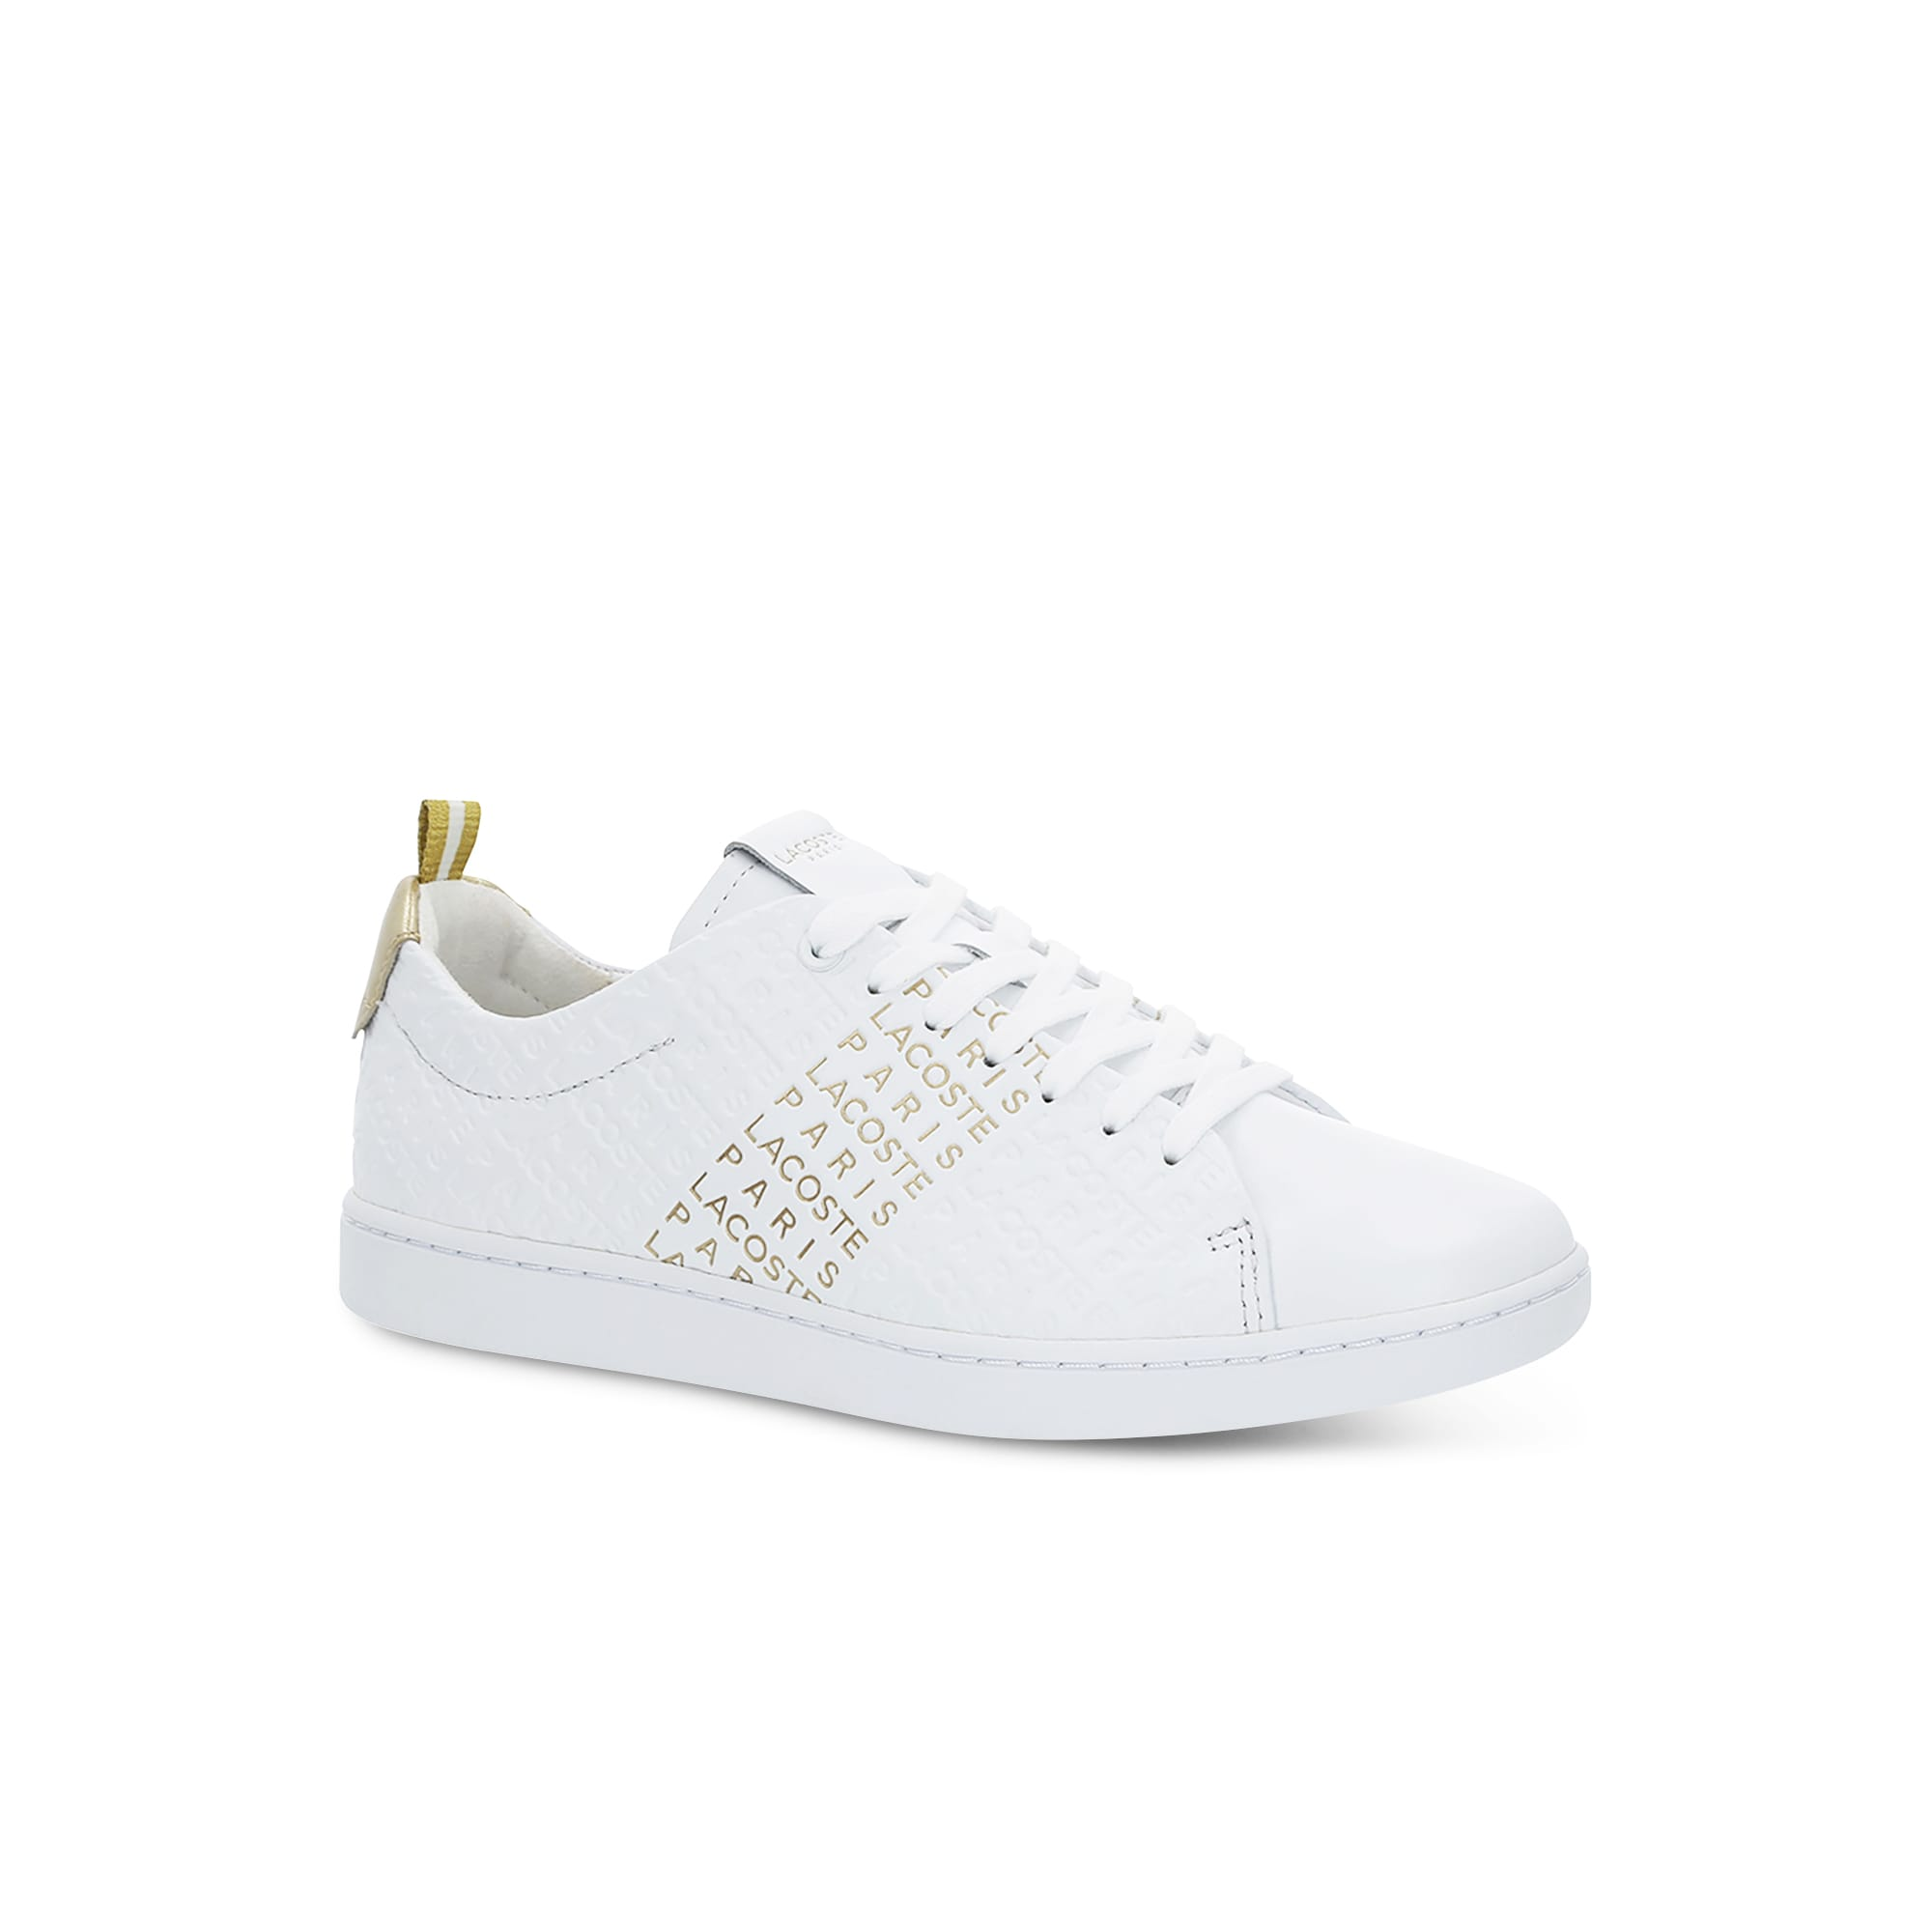 b794fd3b96 40% off. Women's Carnaby Evo Embossed Leather Sneakers